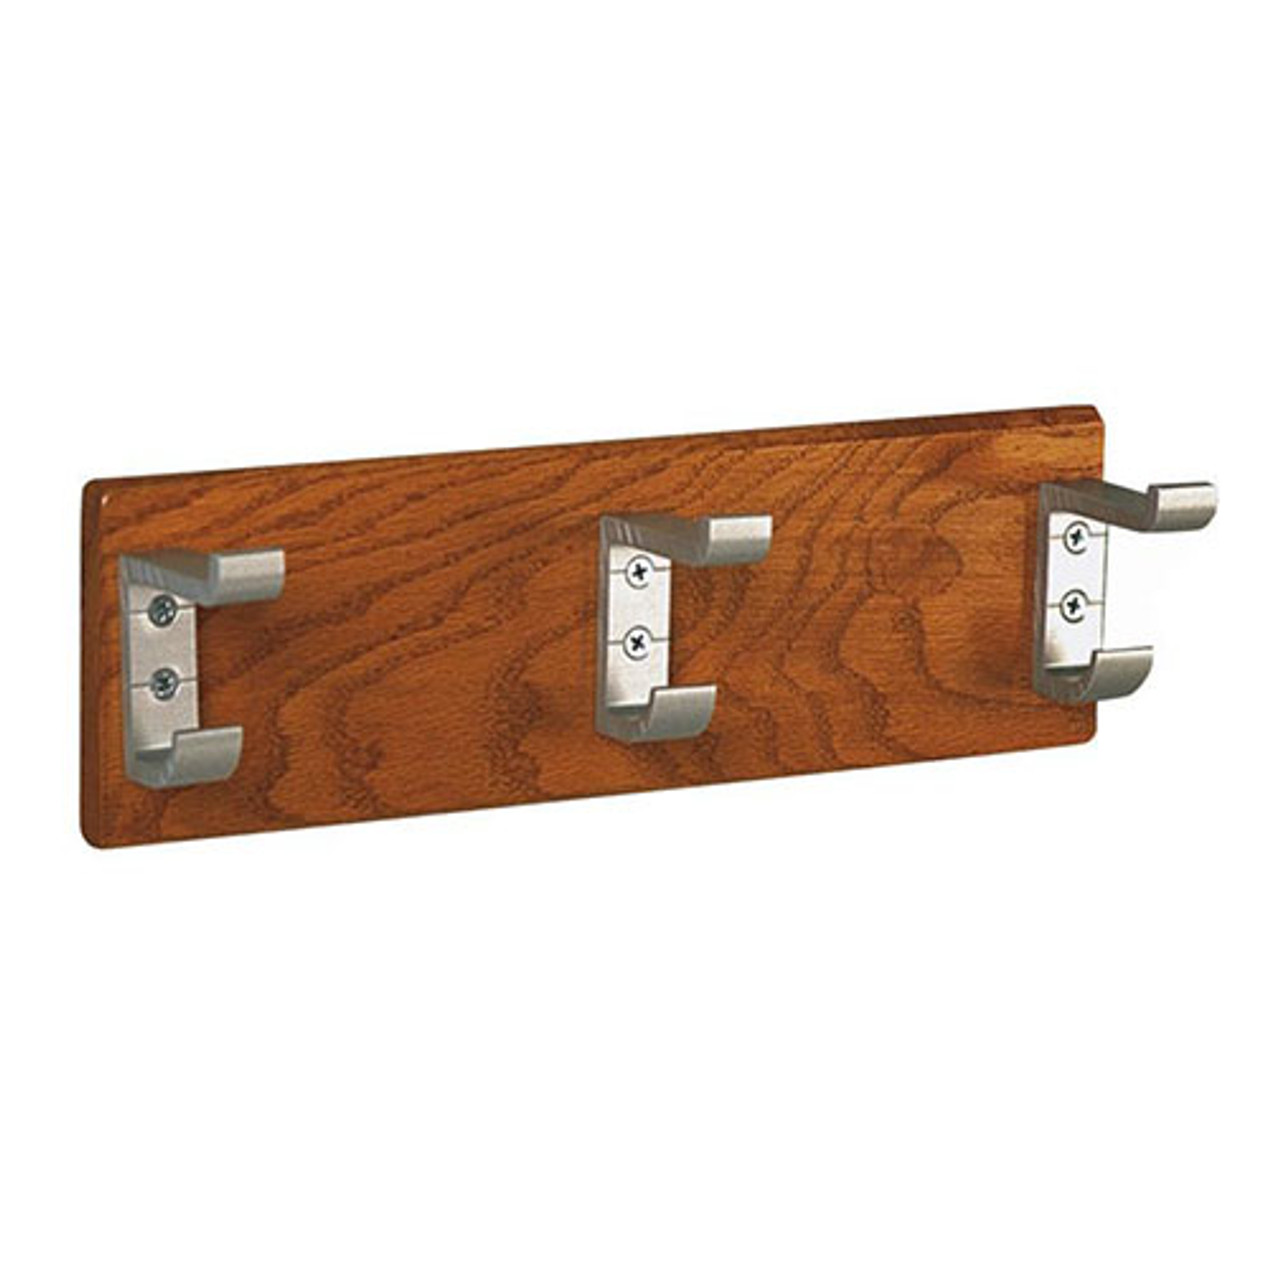 Unlimited Wall Mounted Coat Hook Rack with Wood Panel - 128-100